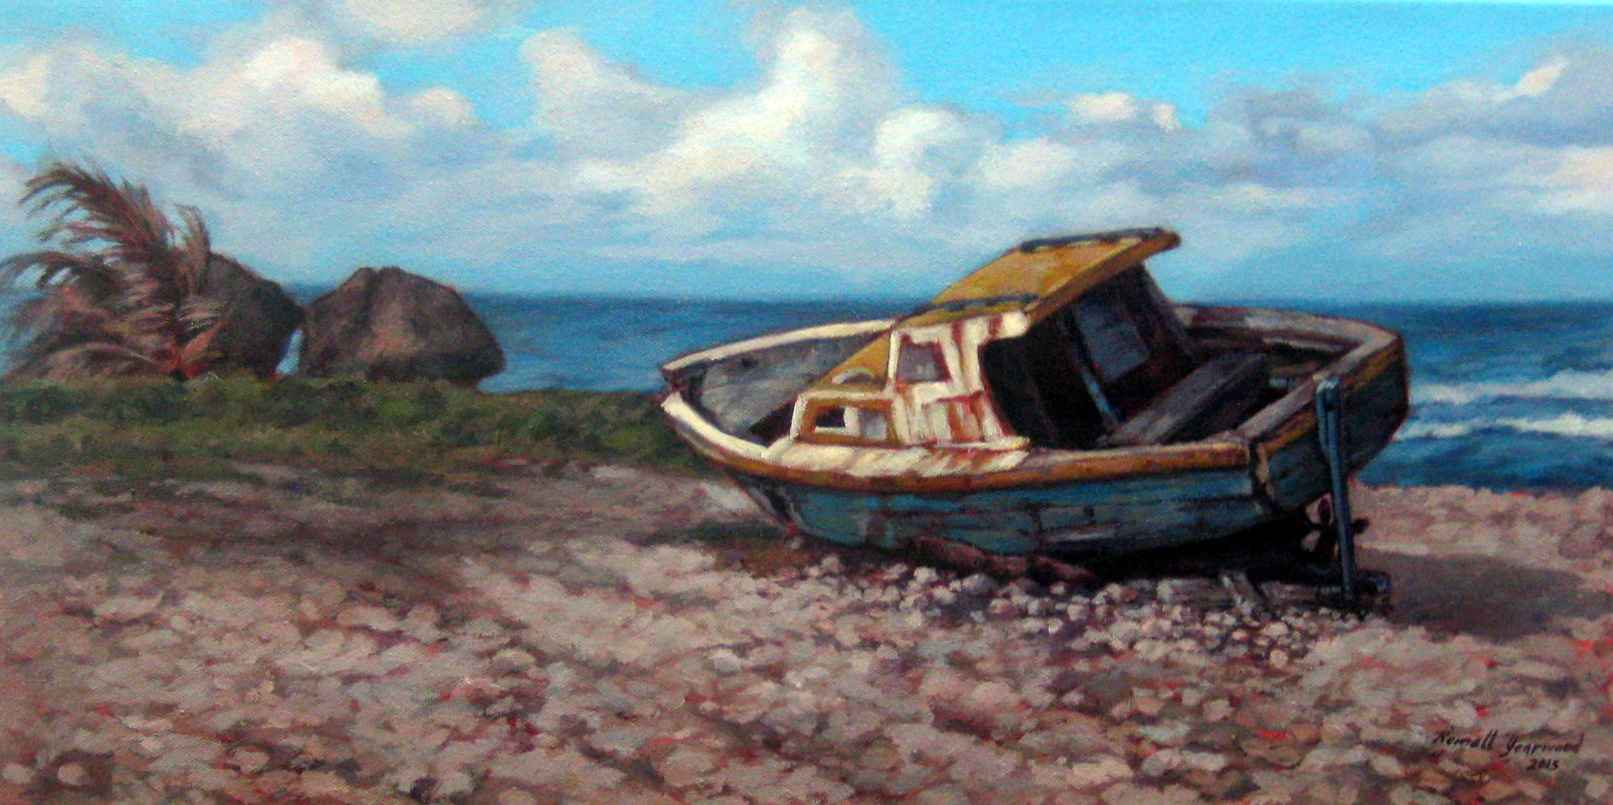 Windy by  Romell Yearwood - Masterpiece Online